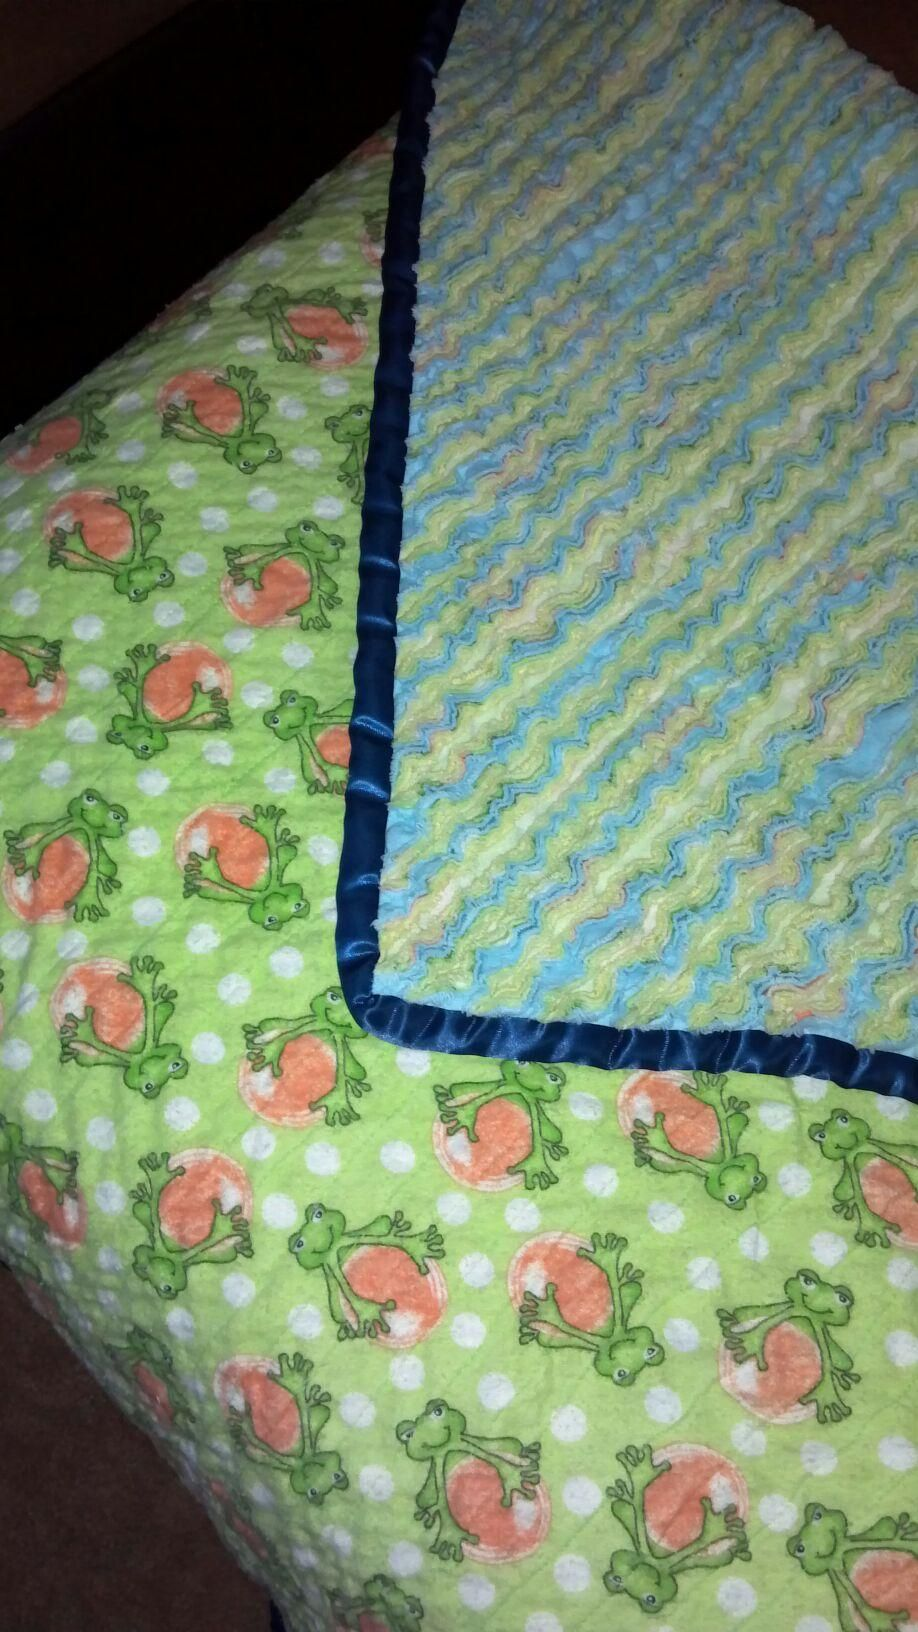 custom made chenille blankets, email me if interested, janelle_hartwig@hotmail.com